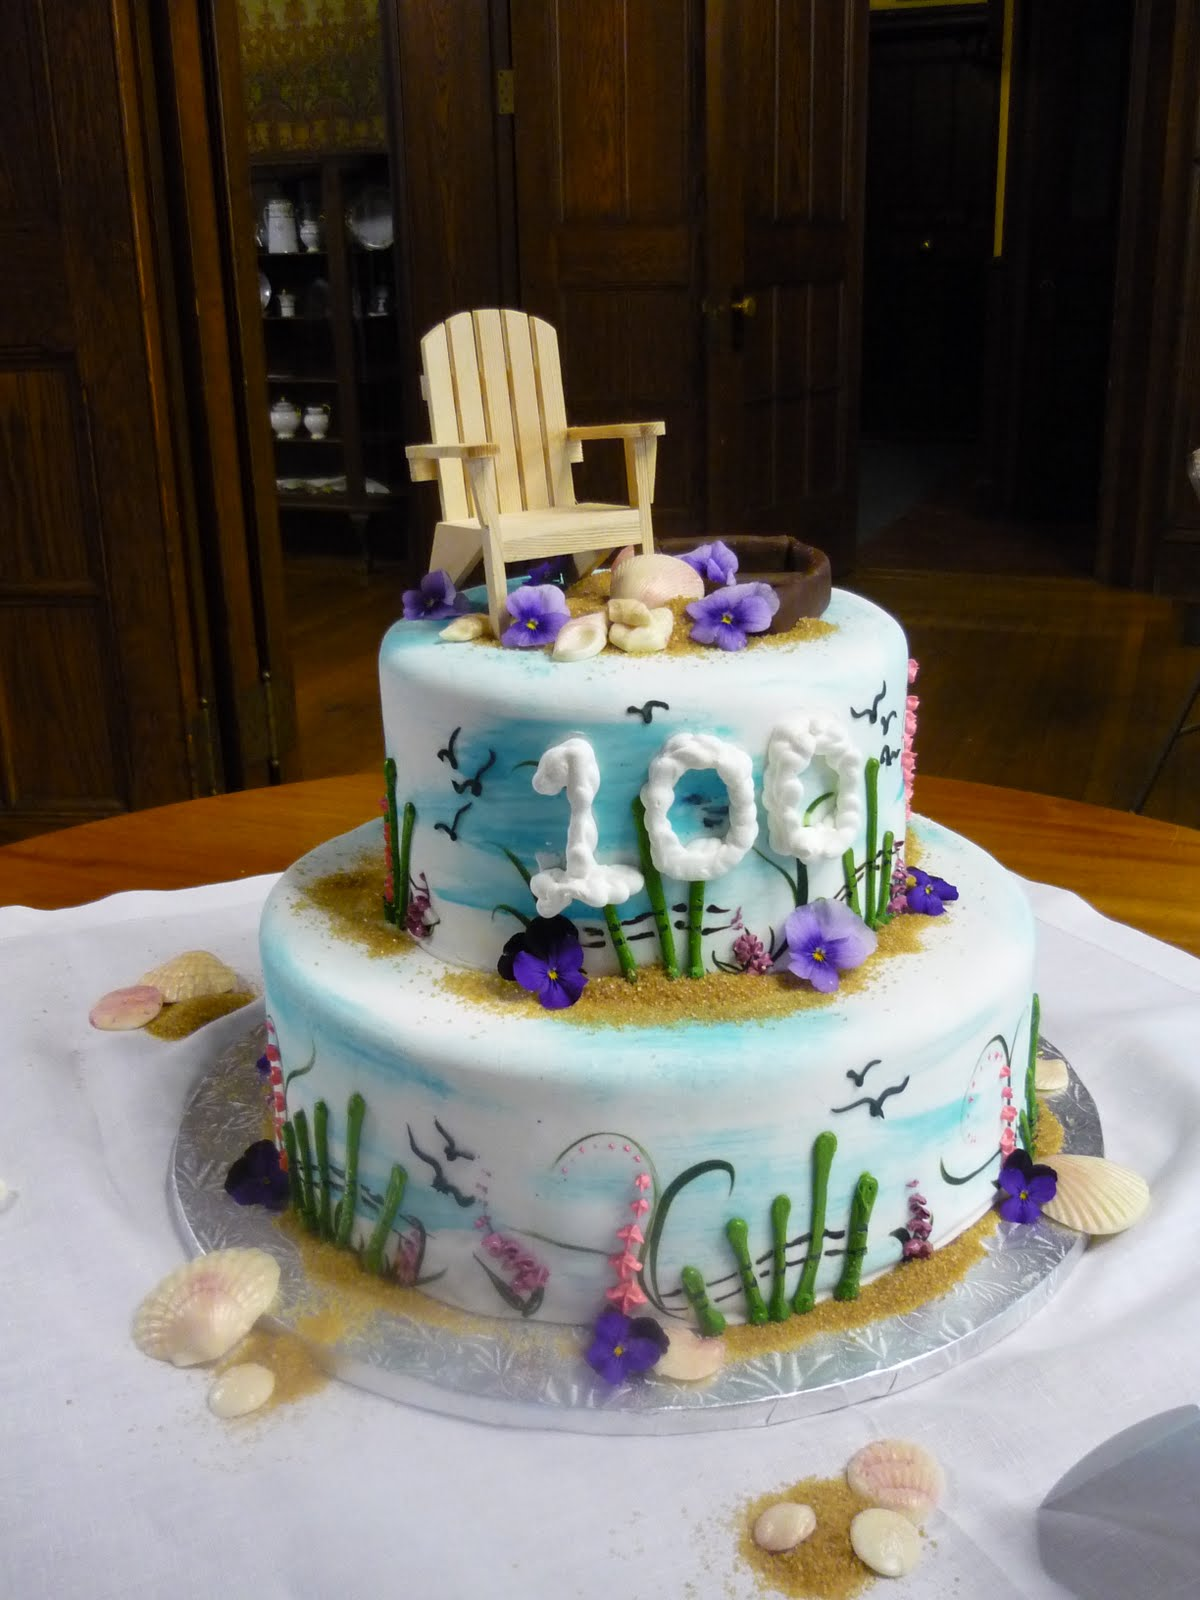 Asked To Create A Special Birthday Cake For Martha Who Was Turning 100 Here Is Her Handpainted Seashore Complete With Adirondack Chair And Skiff